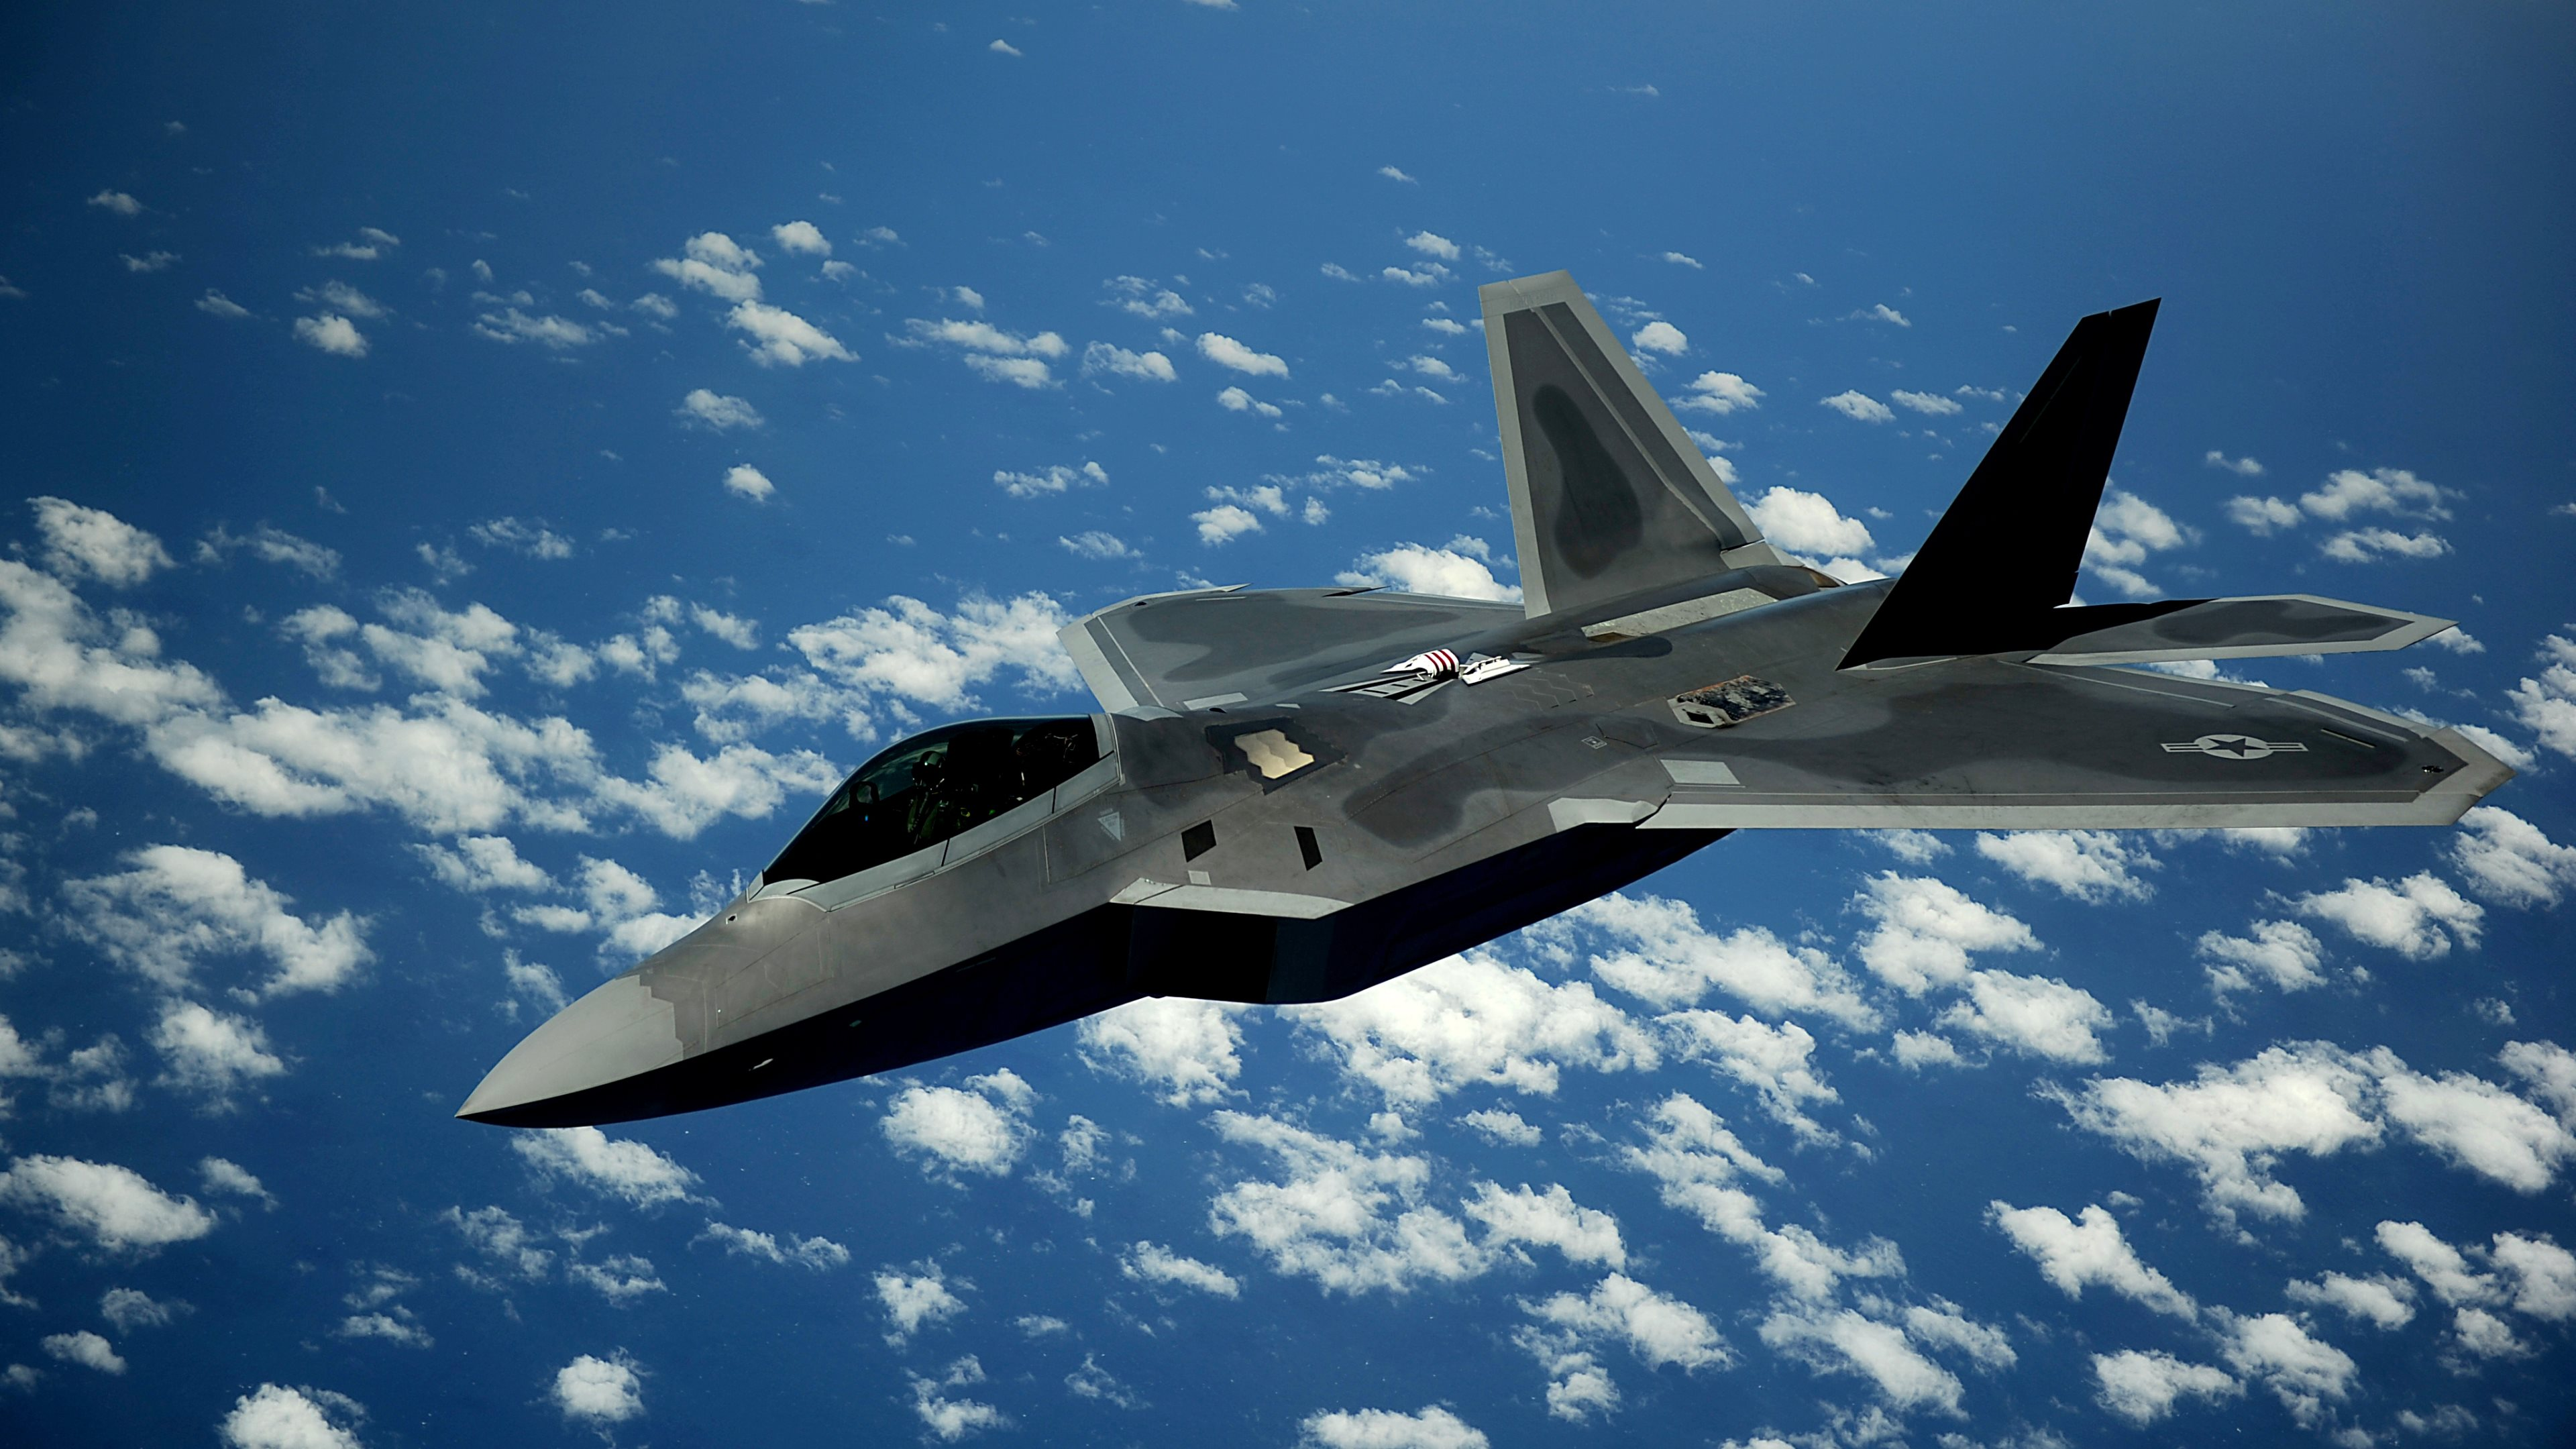 F 22 Air Force Jet Airplane Sky Flying HD POSTER